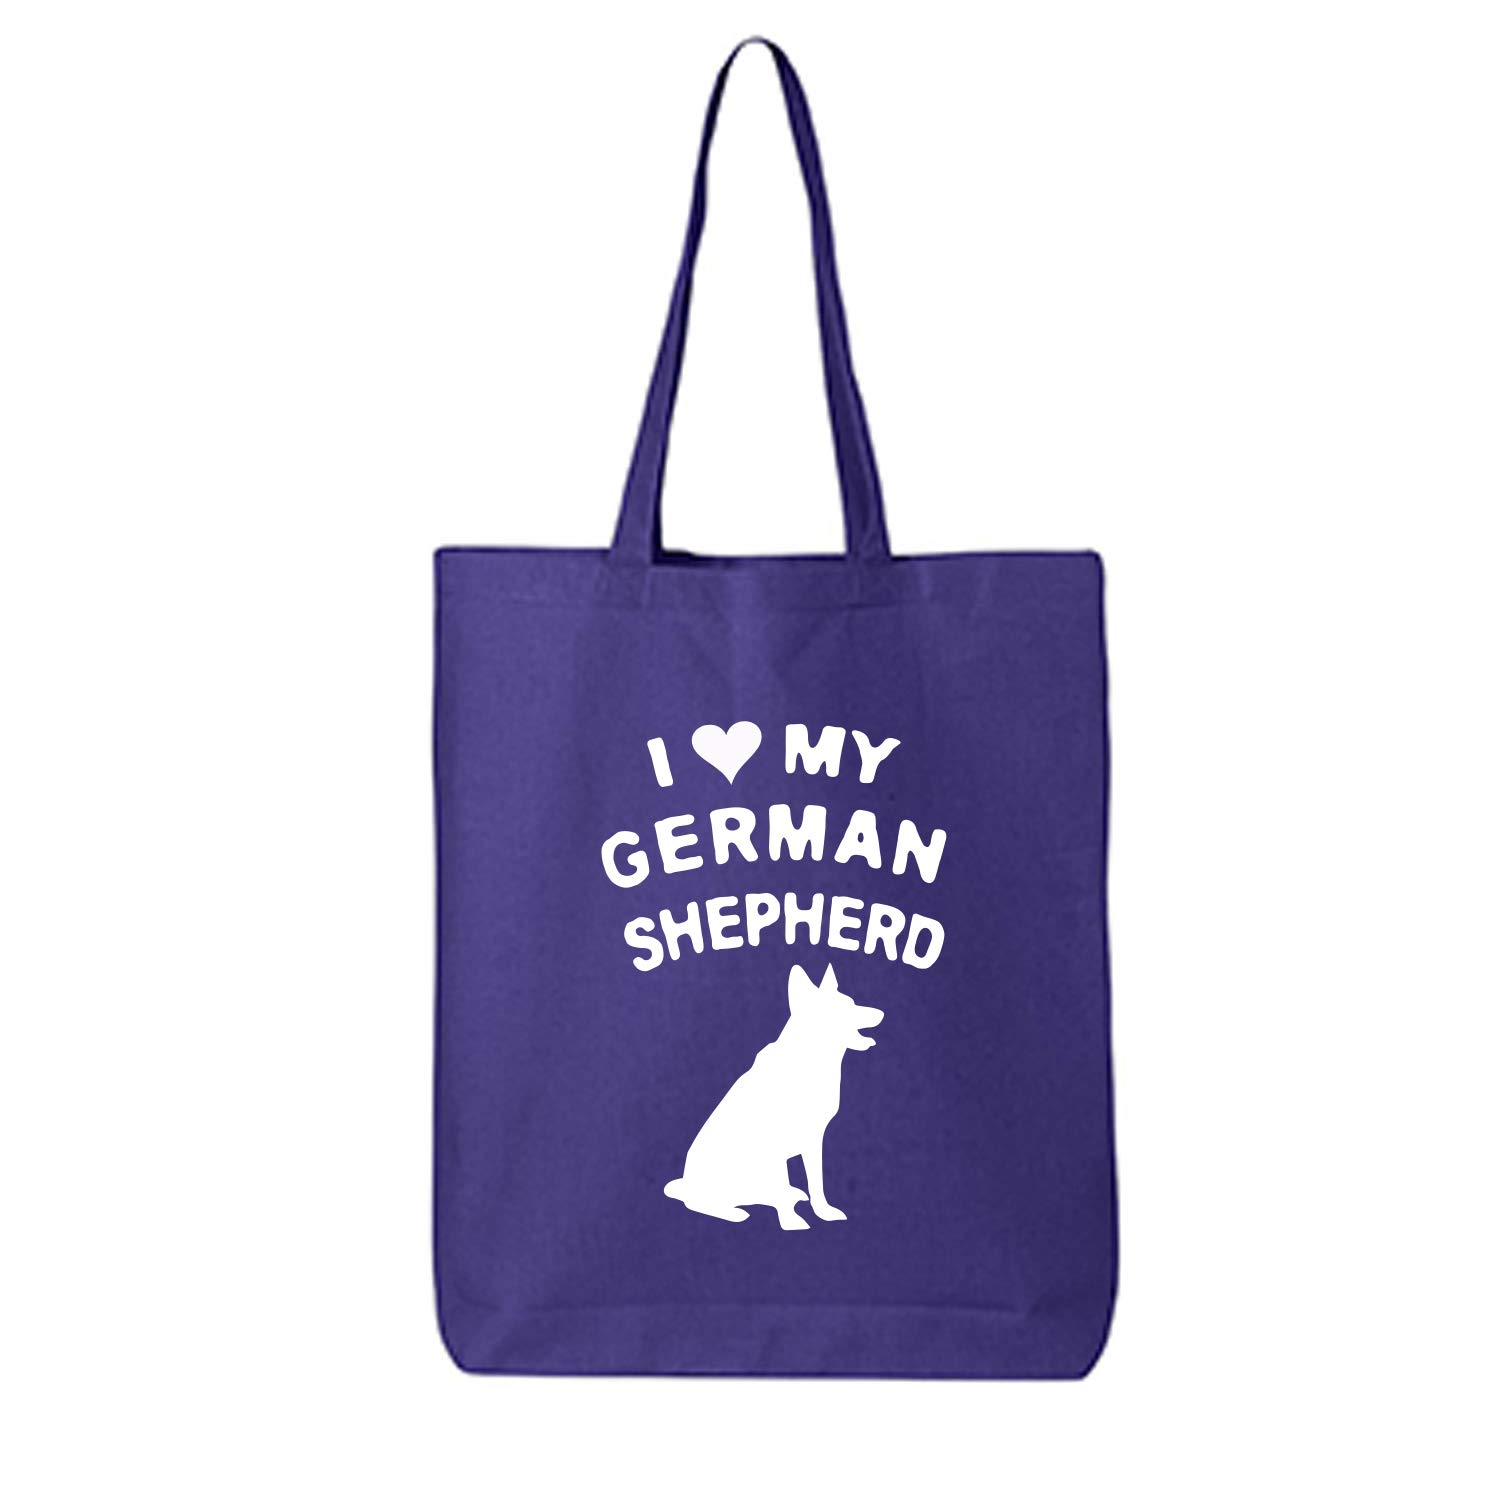 I LOVE MY GERMAN SHEPHERD Cotton Canvas Tote Bag in Purple - One Size